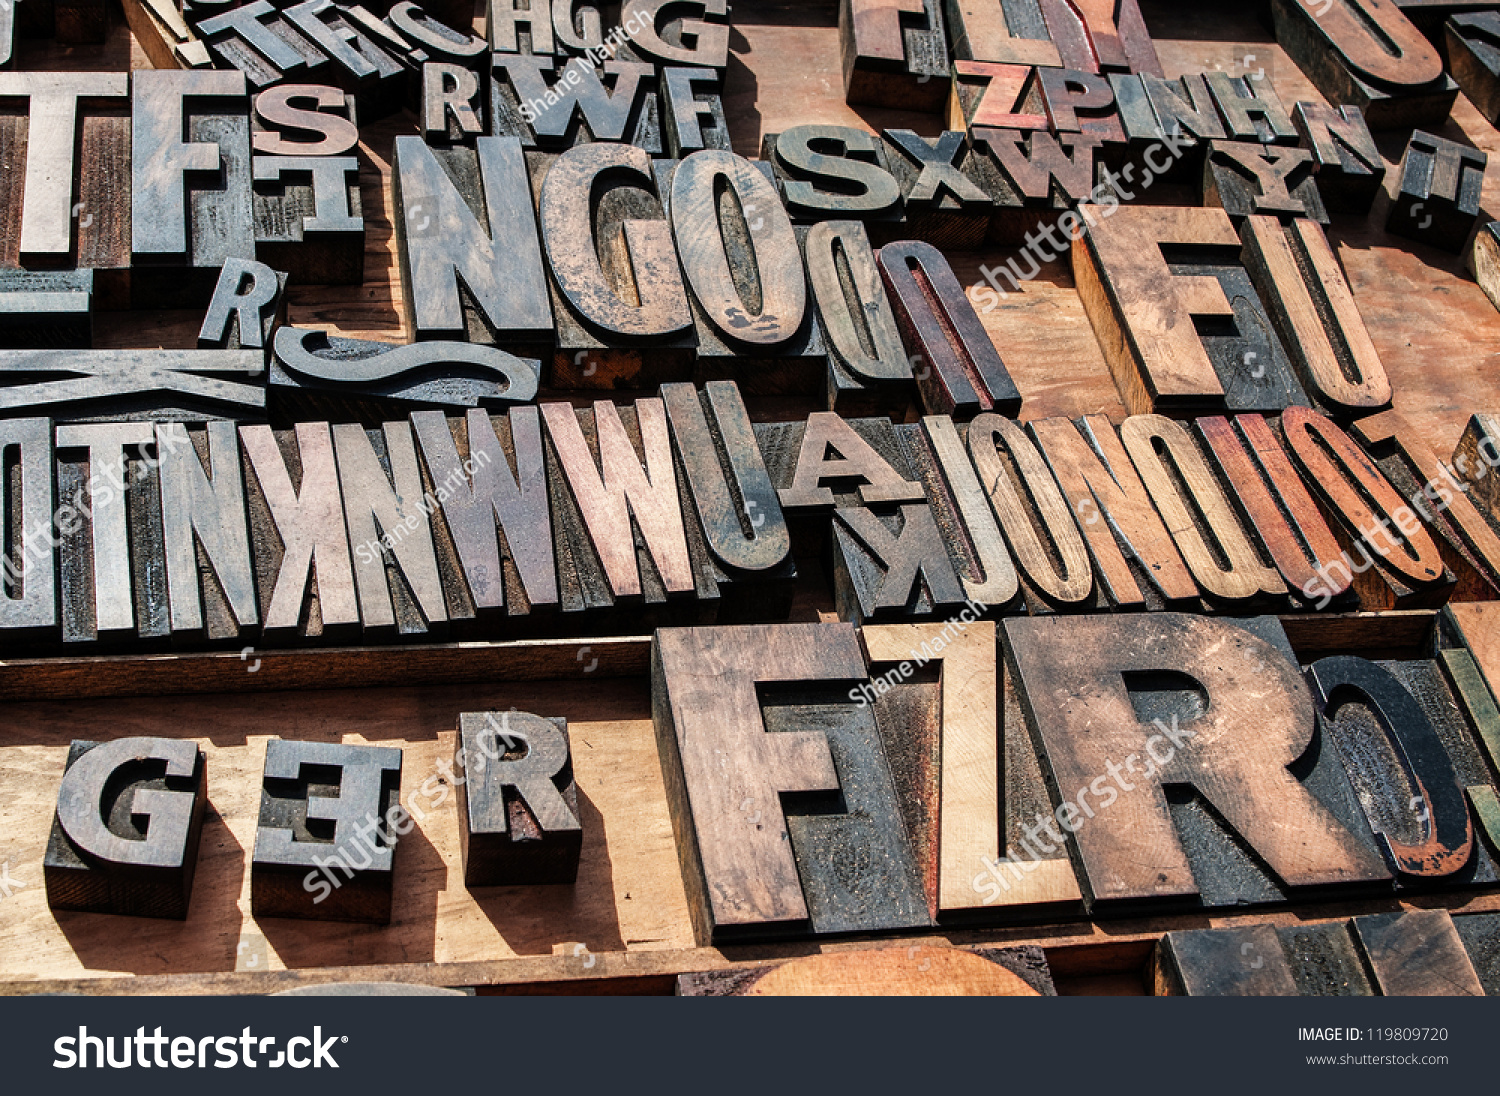 source imageshutterstockcom report gutenberg printing press letters